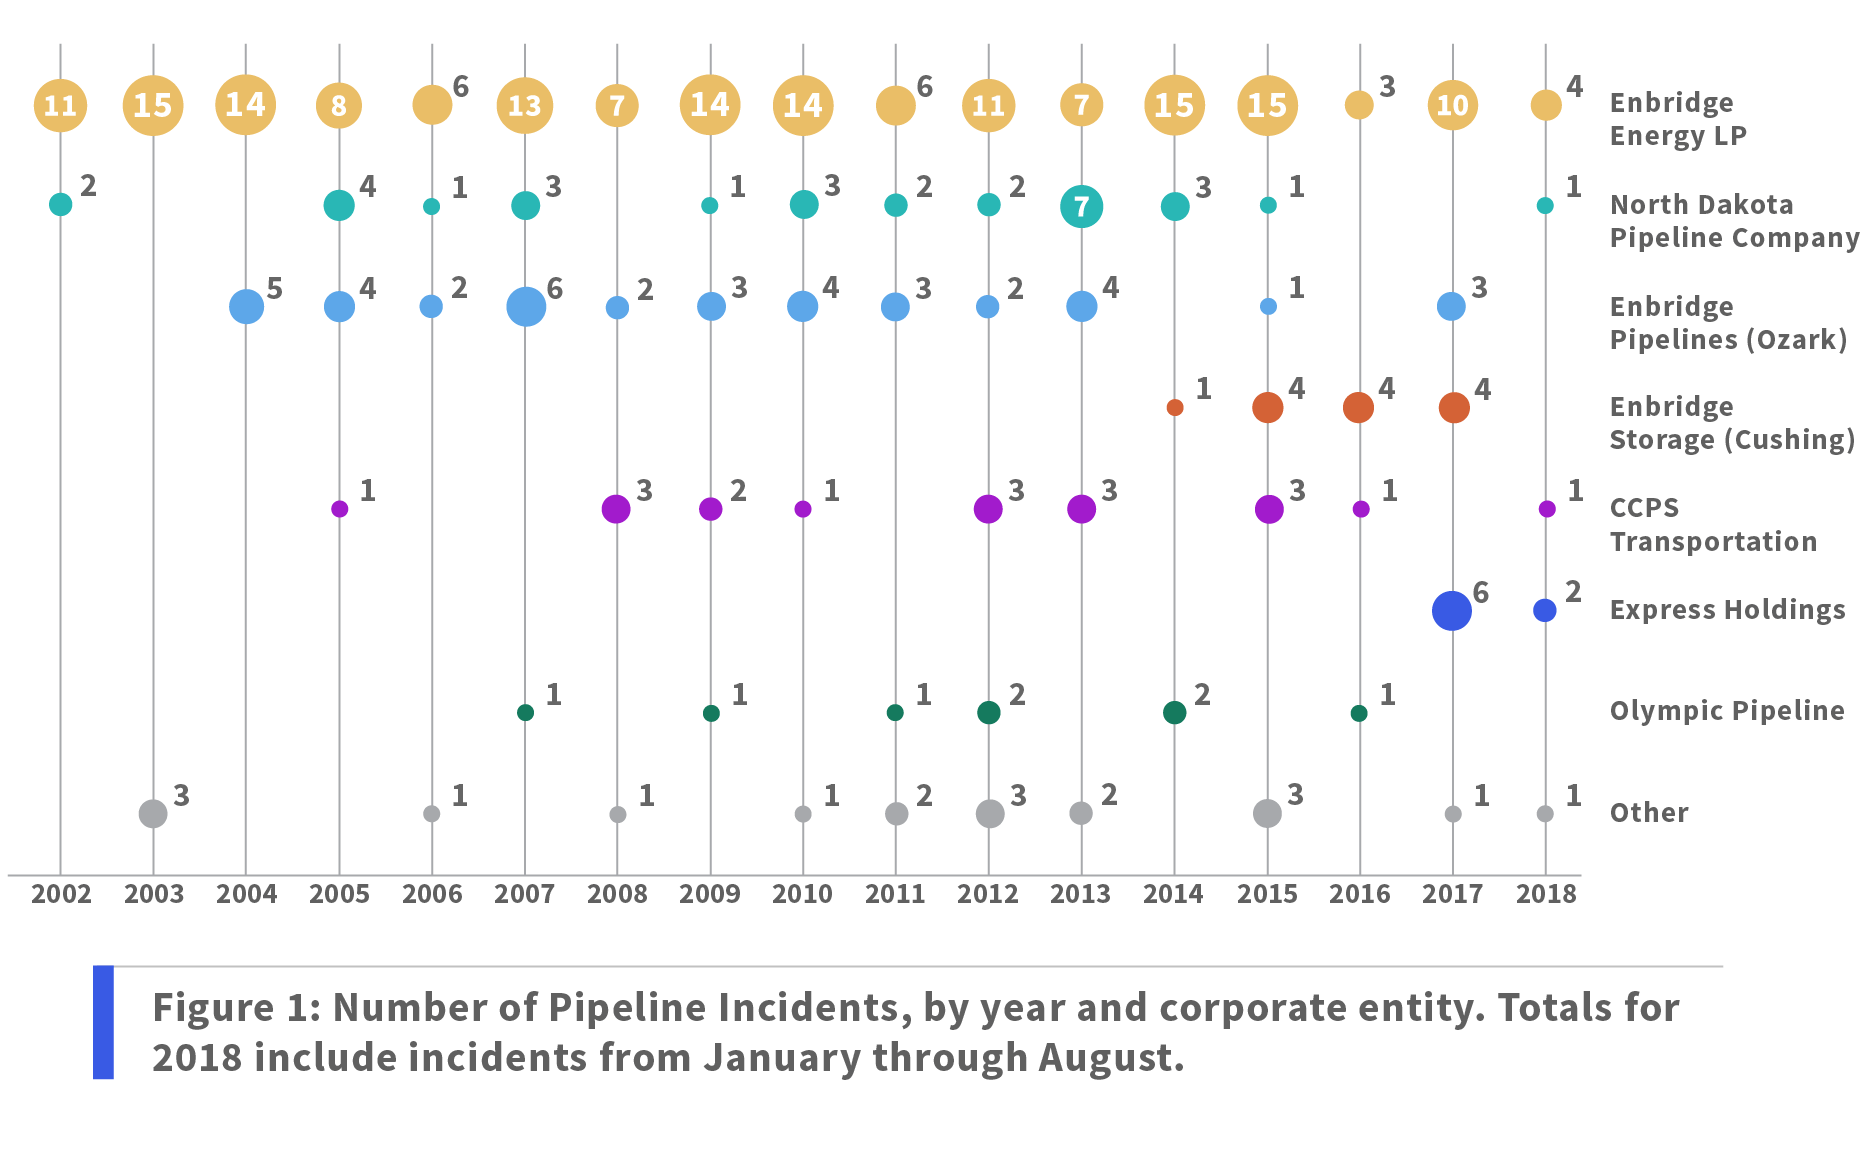 Figure 1: Number of Pipeline Incidents, by year and corporate entity. Totals for 2018 include incidents from January through August.